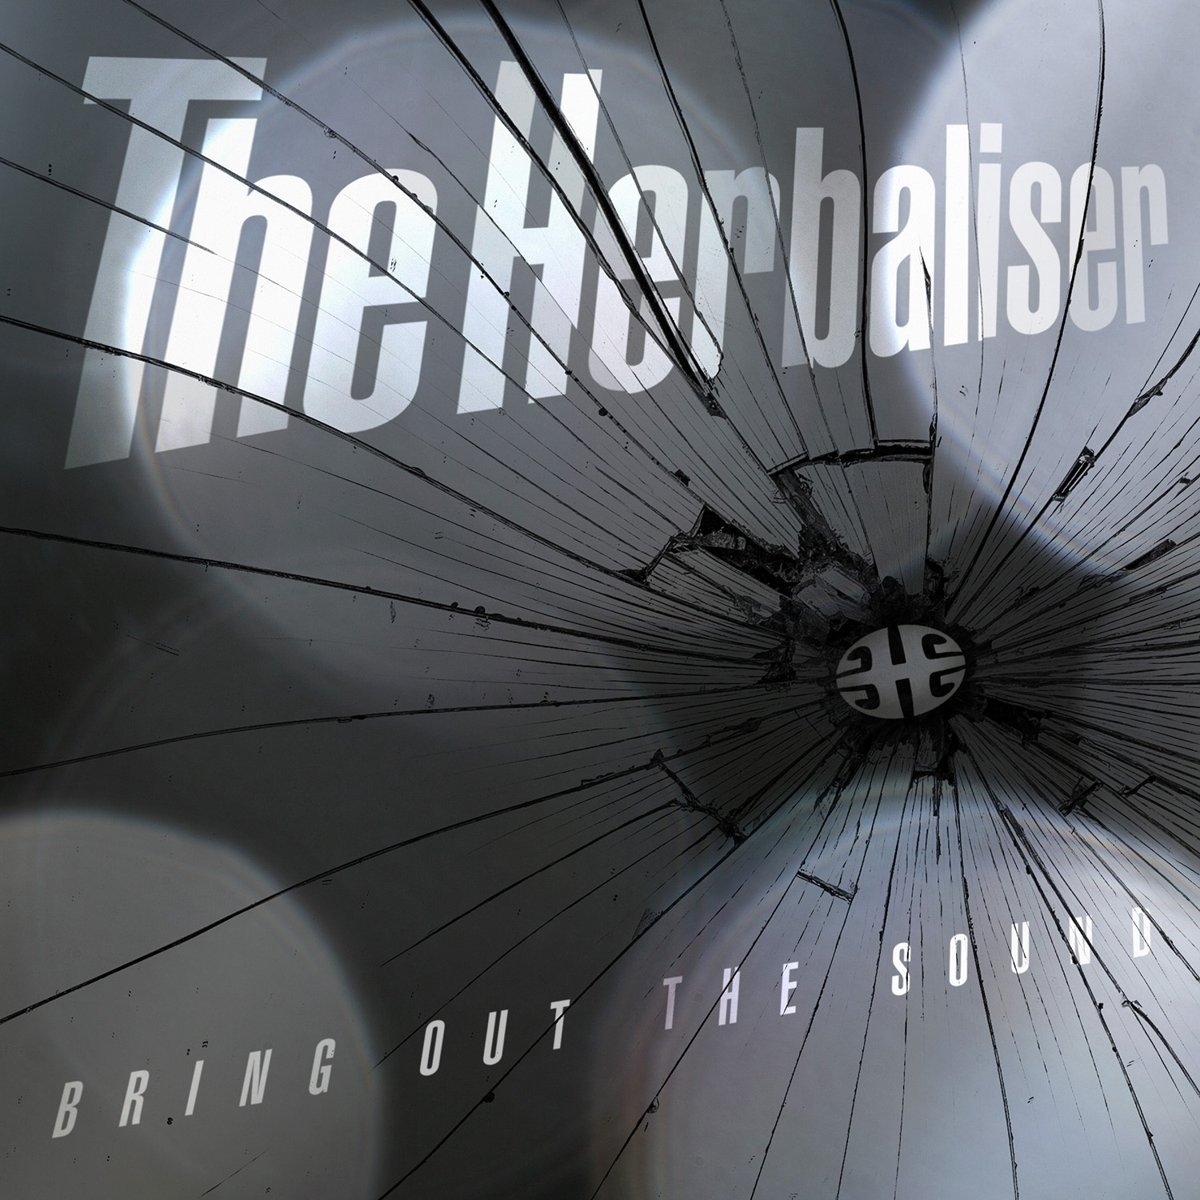 Vinilo : The Herbaliser - Bring Out The Sound (United Kingdom - Import, 2PC)